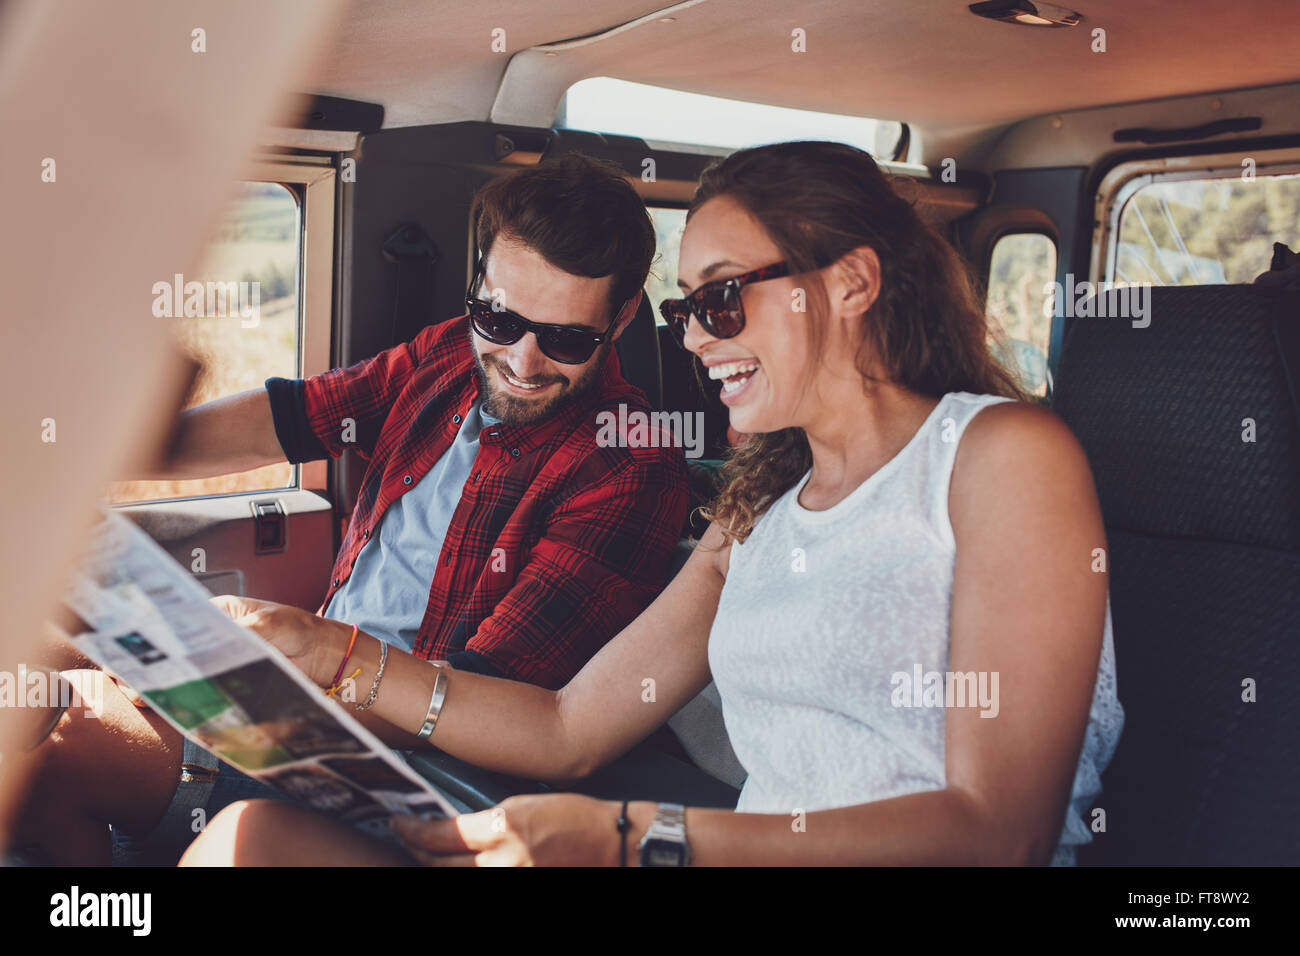 Happy young couple planning their travels together reading a map while sitting in their car. Smiling man and woman - Stock Image